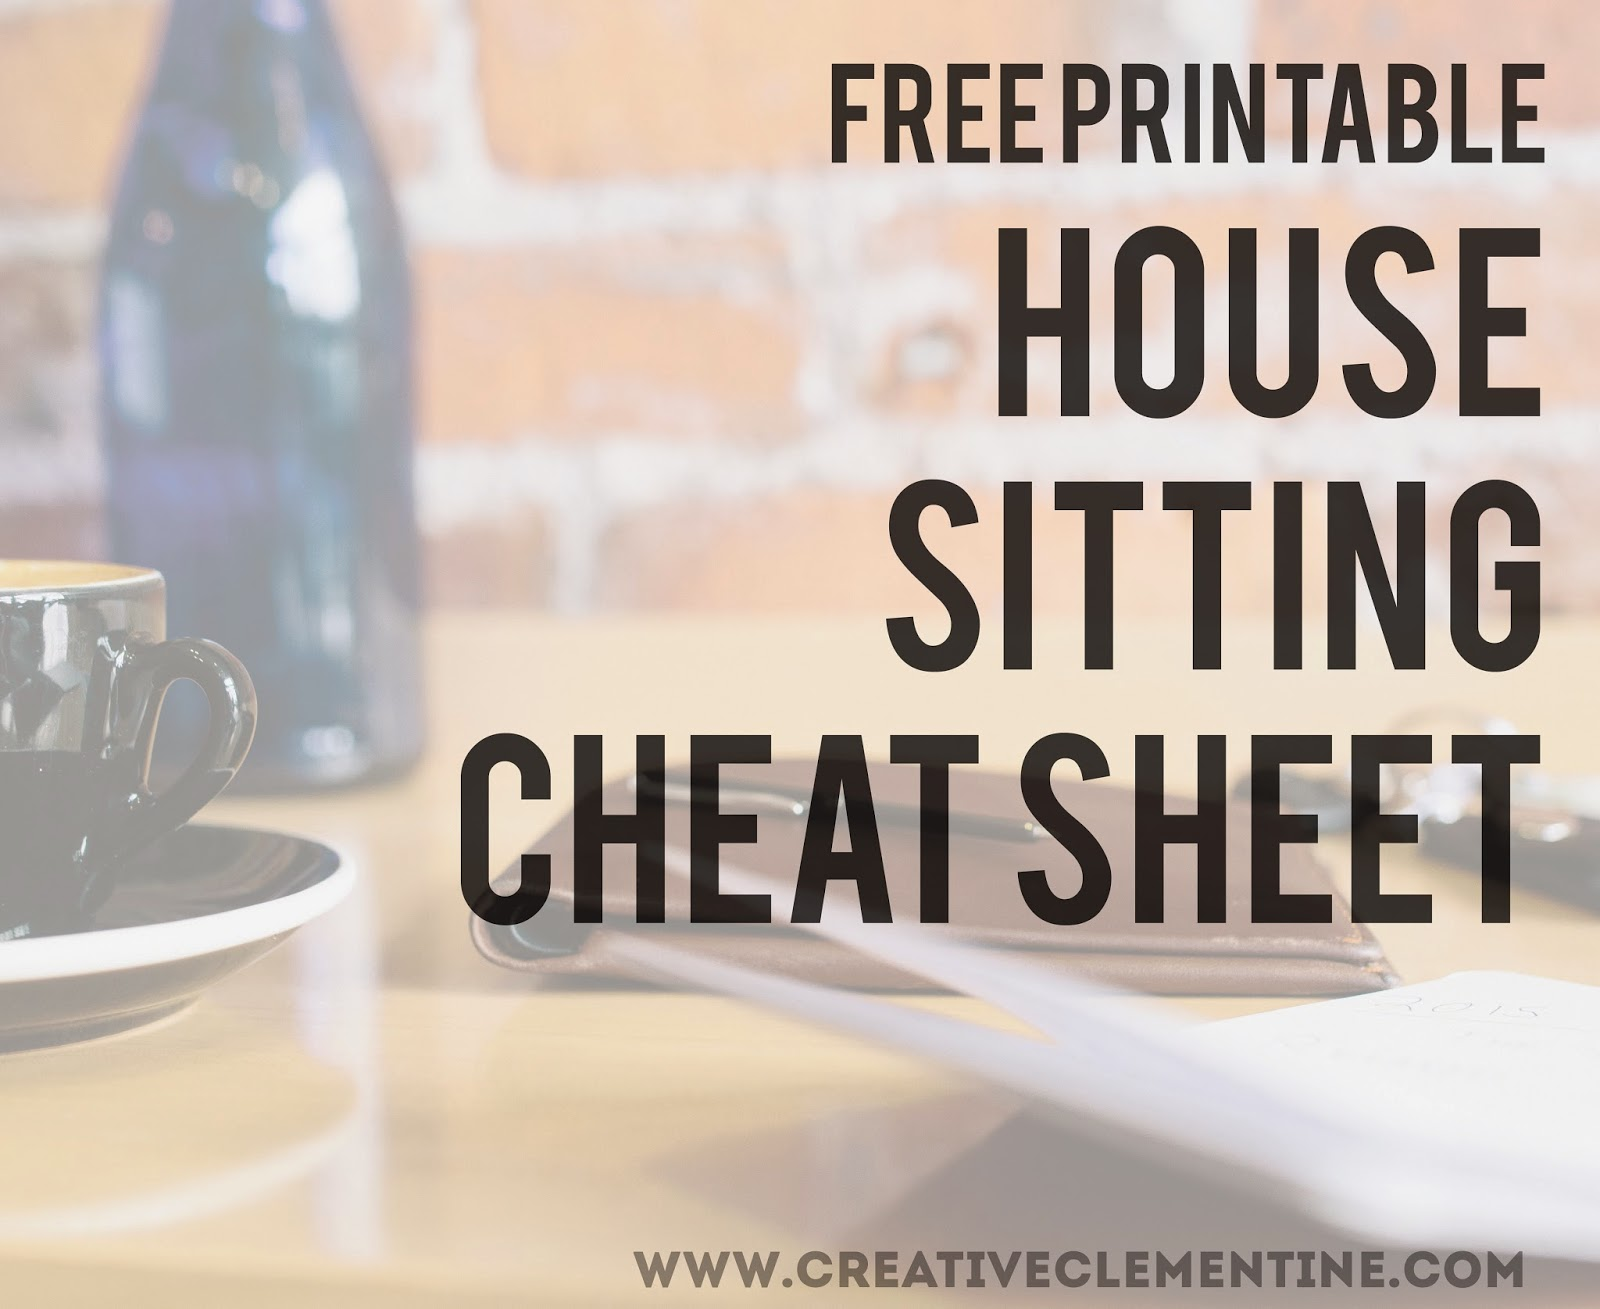 Free House Sitting Printable via Creative Clementine.com